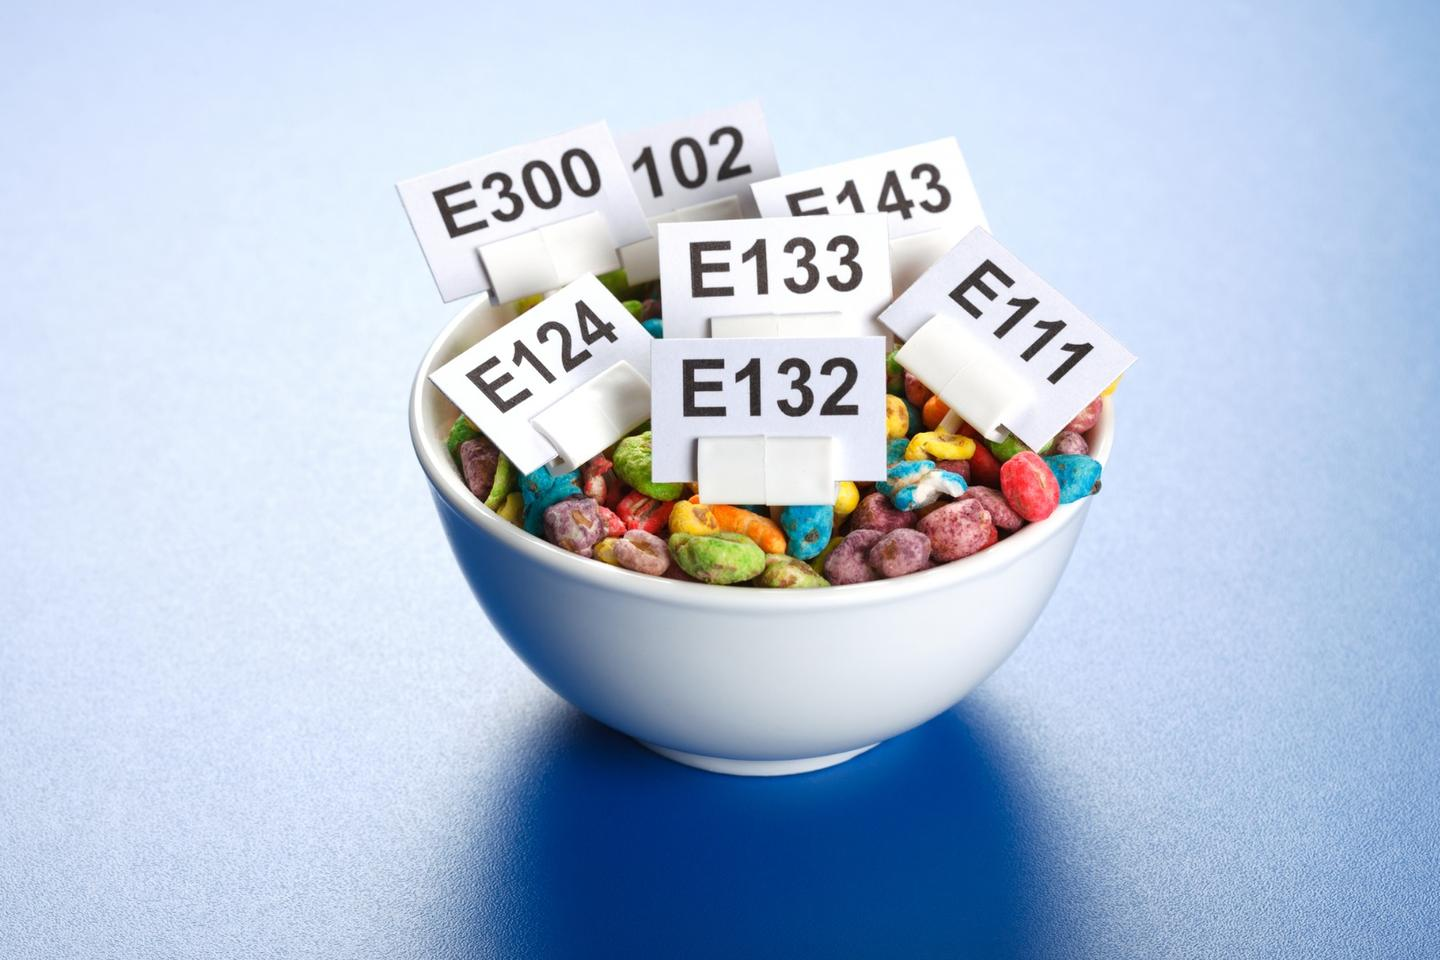 A new study suggests food additive E171, or titanium dioxide, can impair gut homeostasis and lead to the development of several diseases